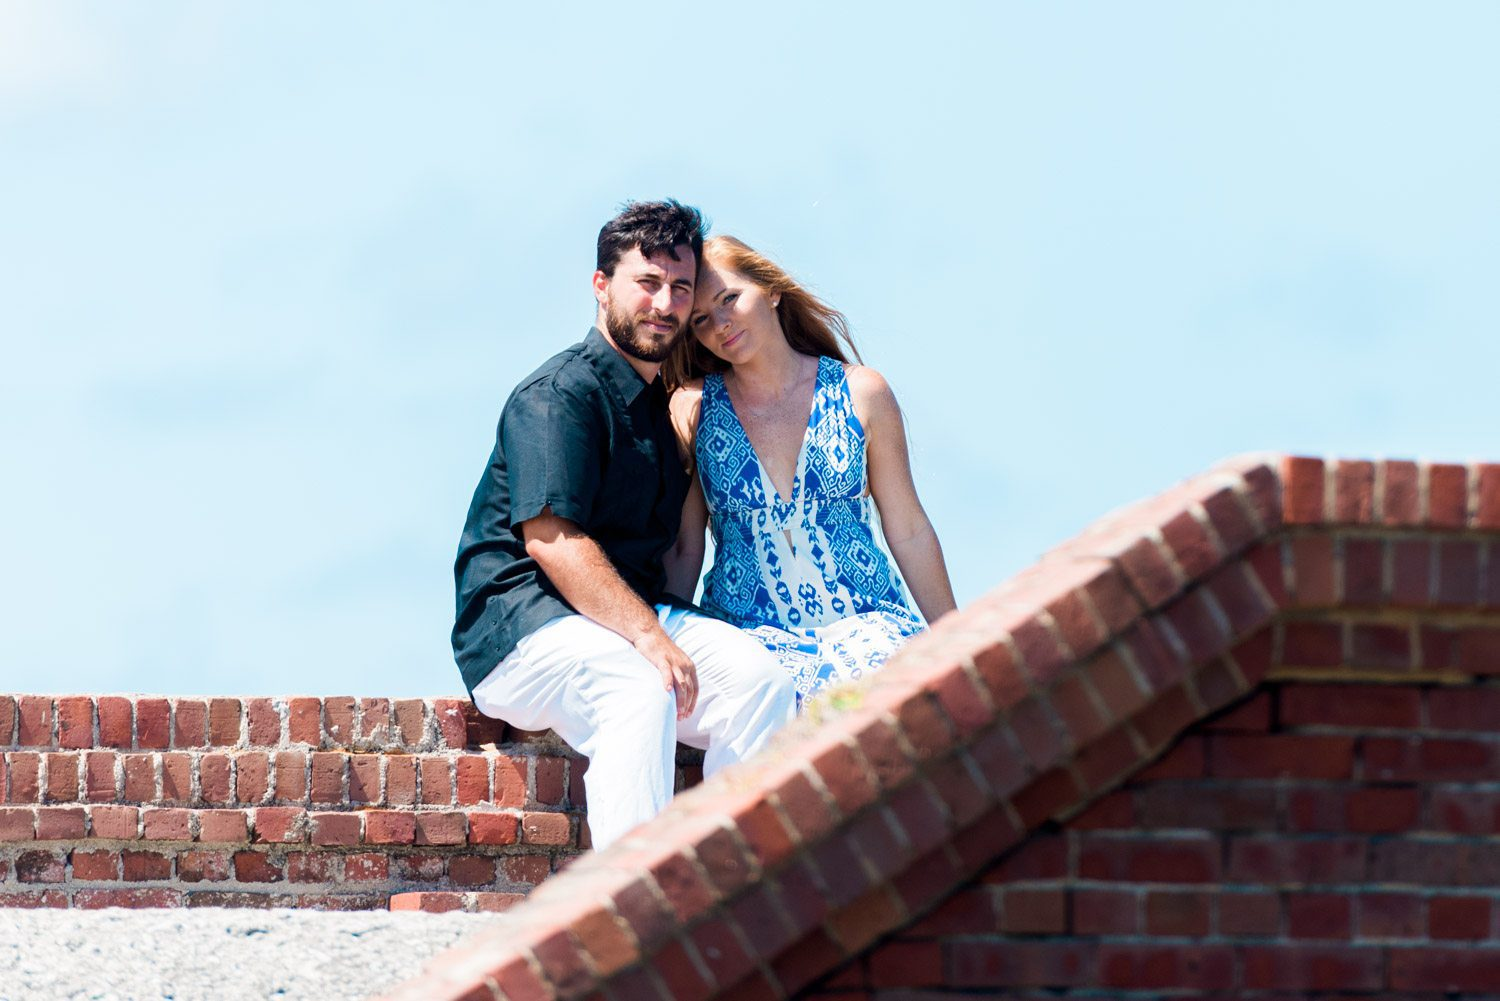 key west wedding photography prices include a complimentary engagement session